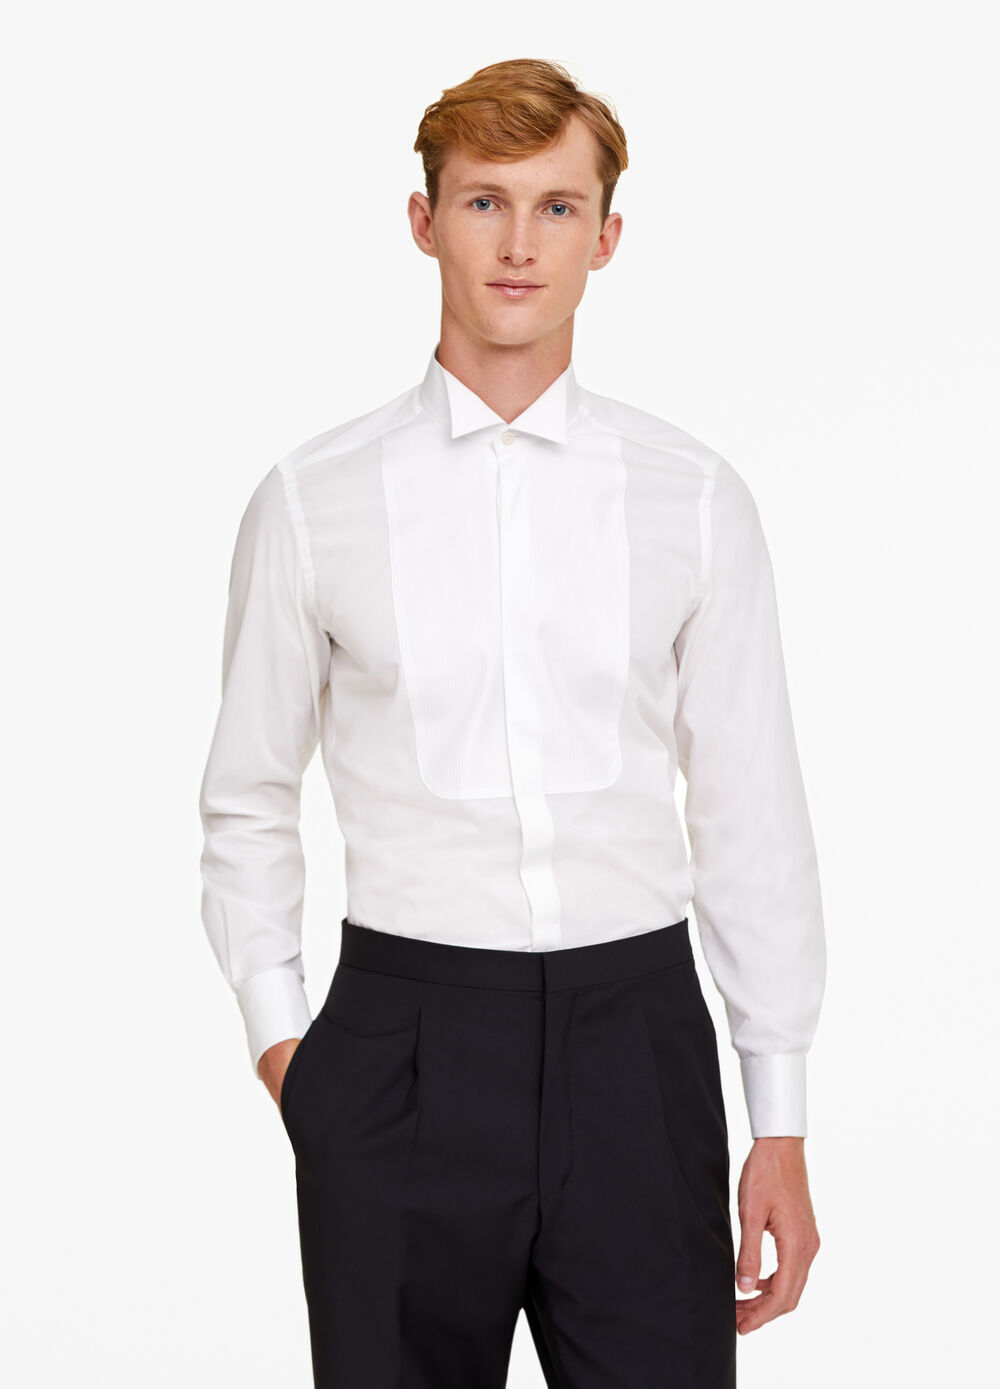 OVS Arts of Italy shirt for tailcoat suit